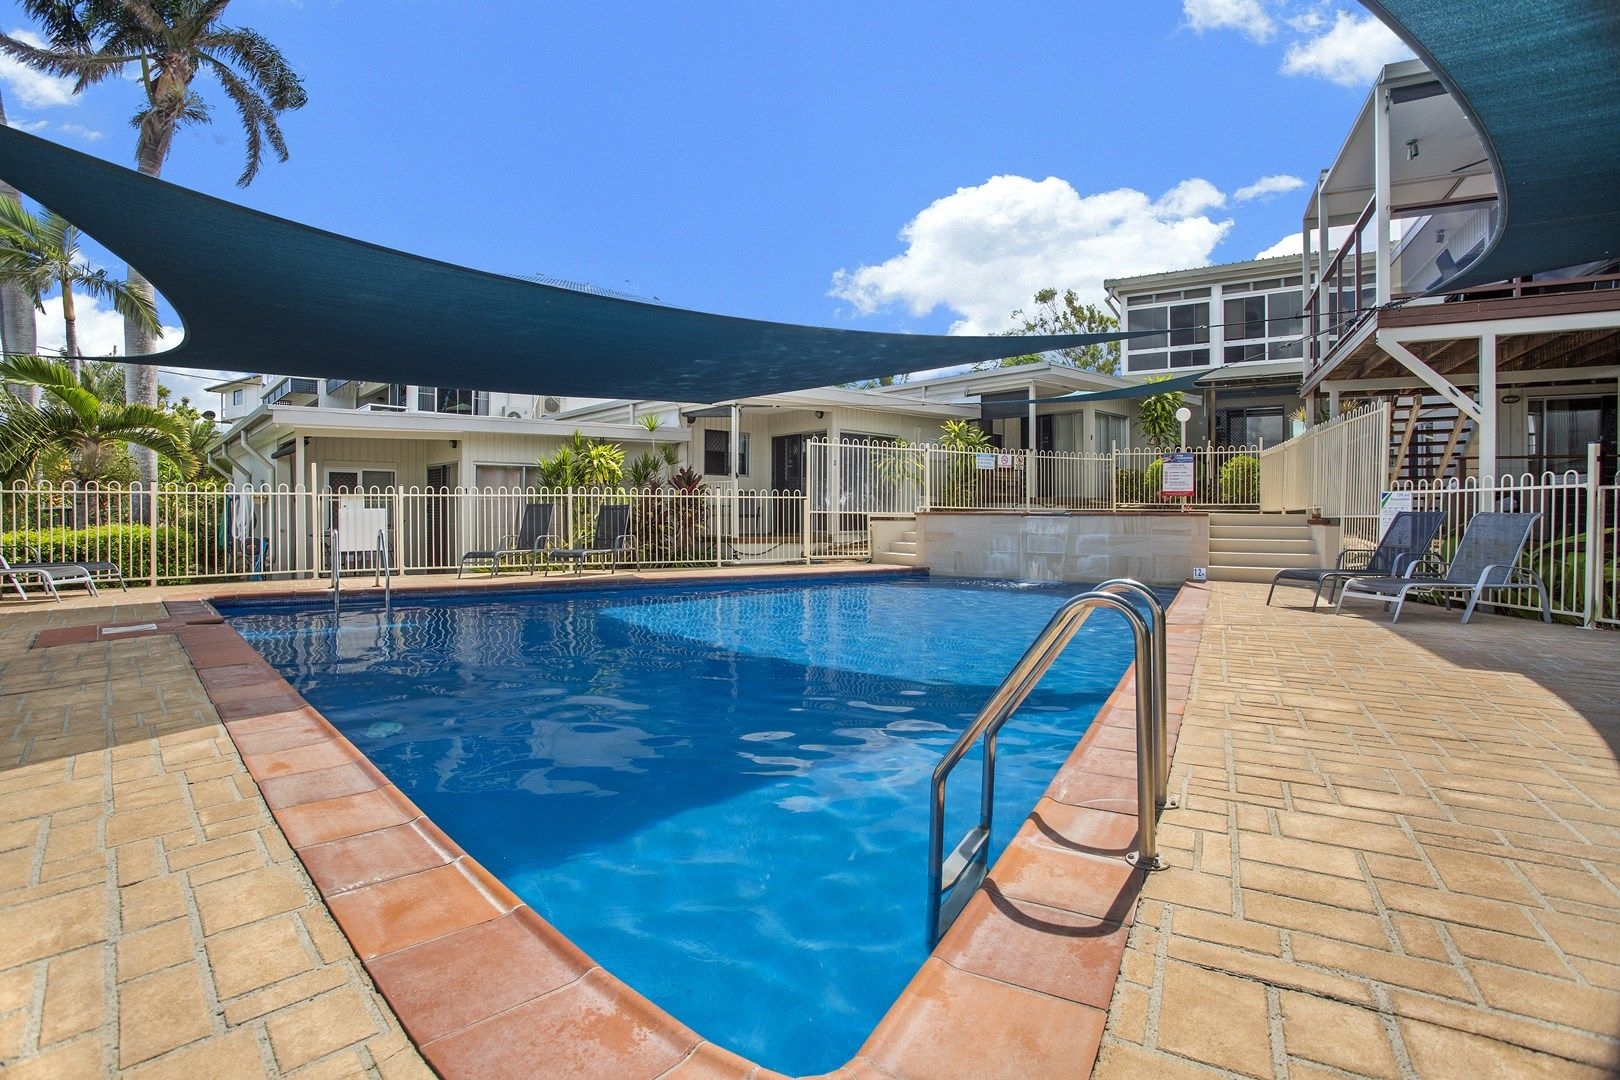 14/22 Airlie Crescent, Airlie Beach QLD 4802, Image 0